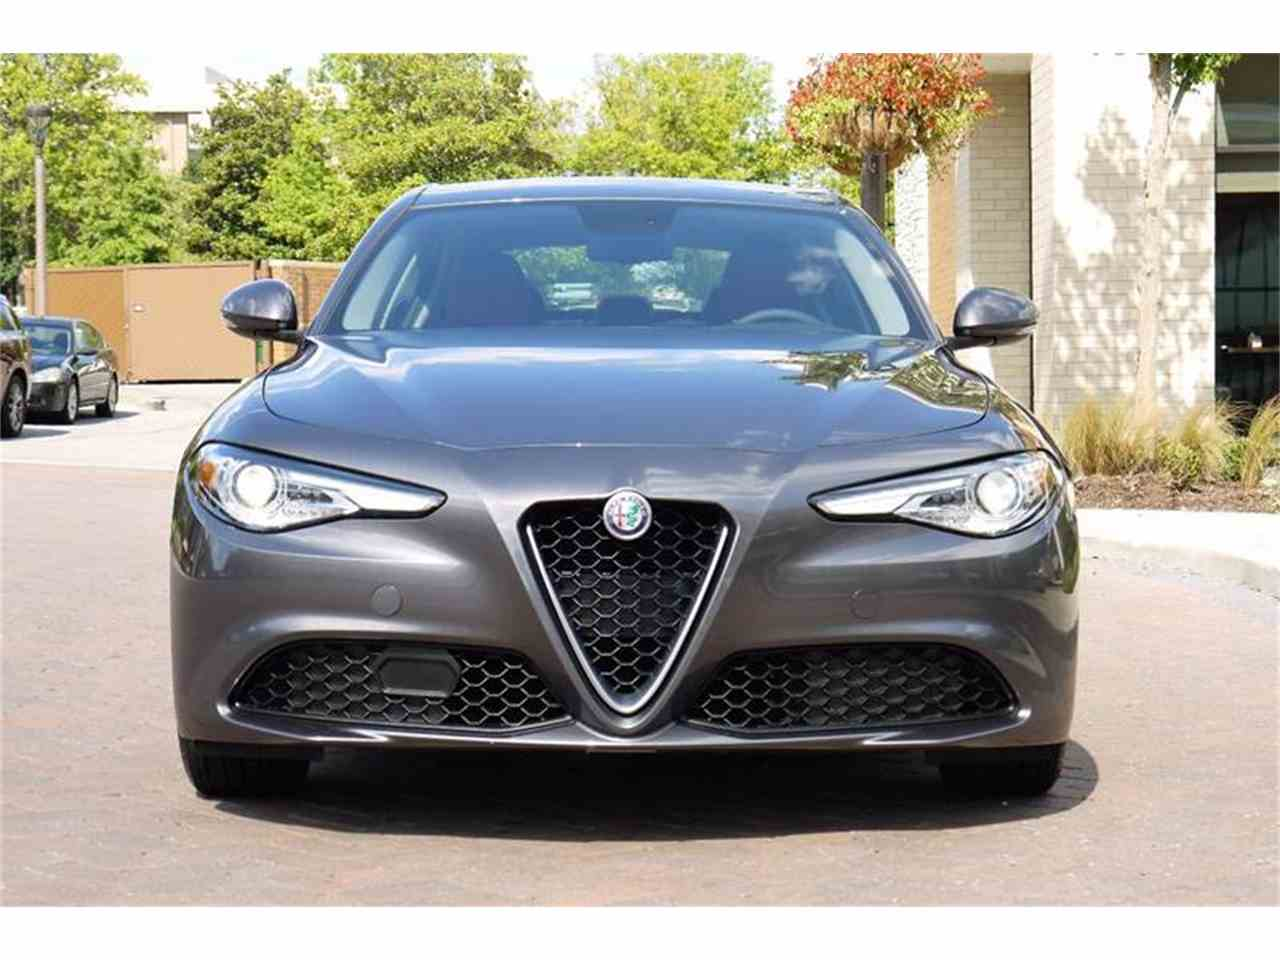 Large Picture of 2017 Alfa Romeo Giulietta Spider located in Brentwood Tennessee - $38,500.00 - M2ND